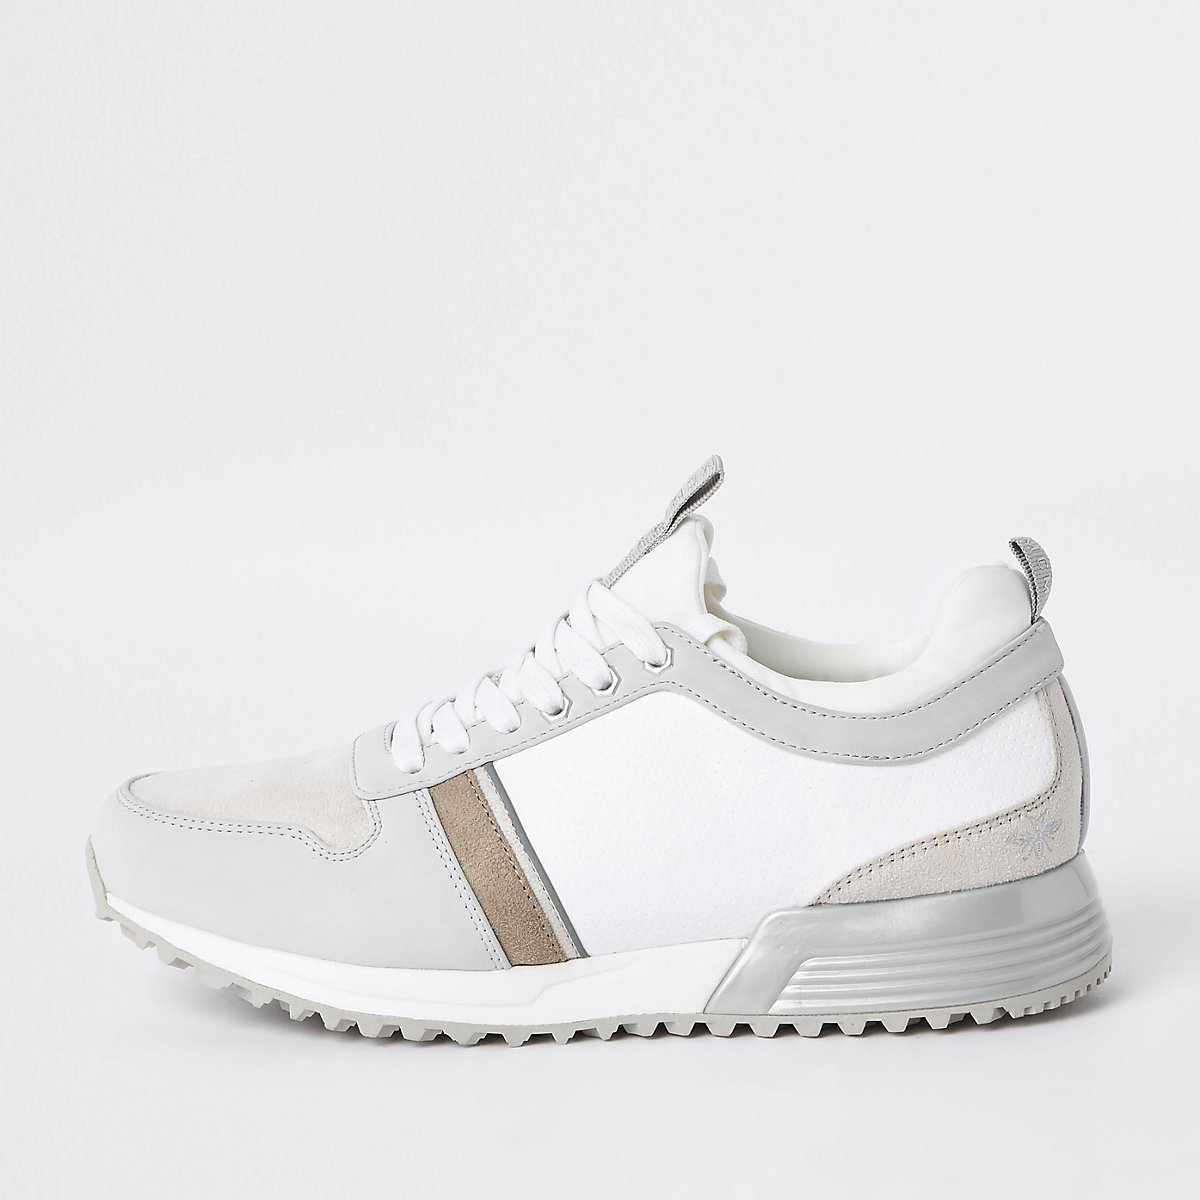 White contrast 'MCMLXXVI' lace-up trainers